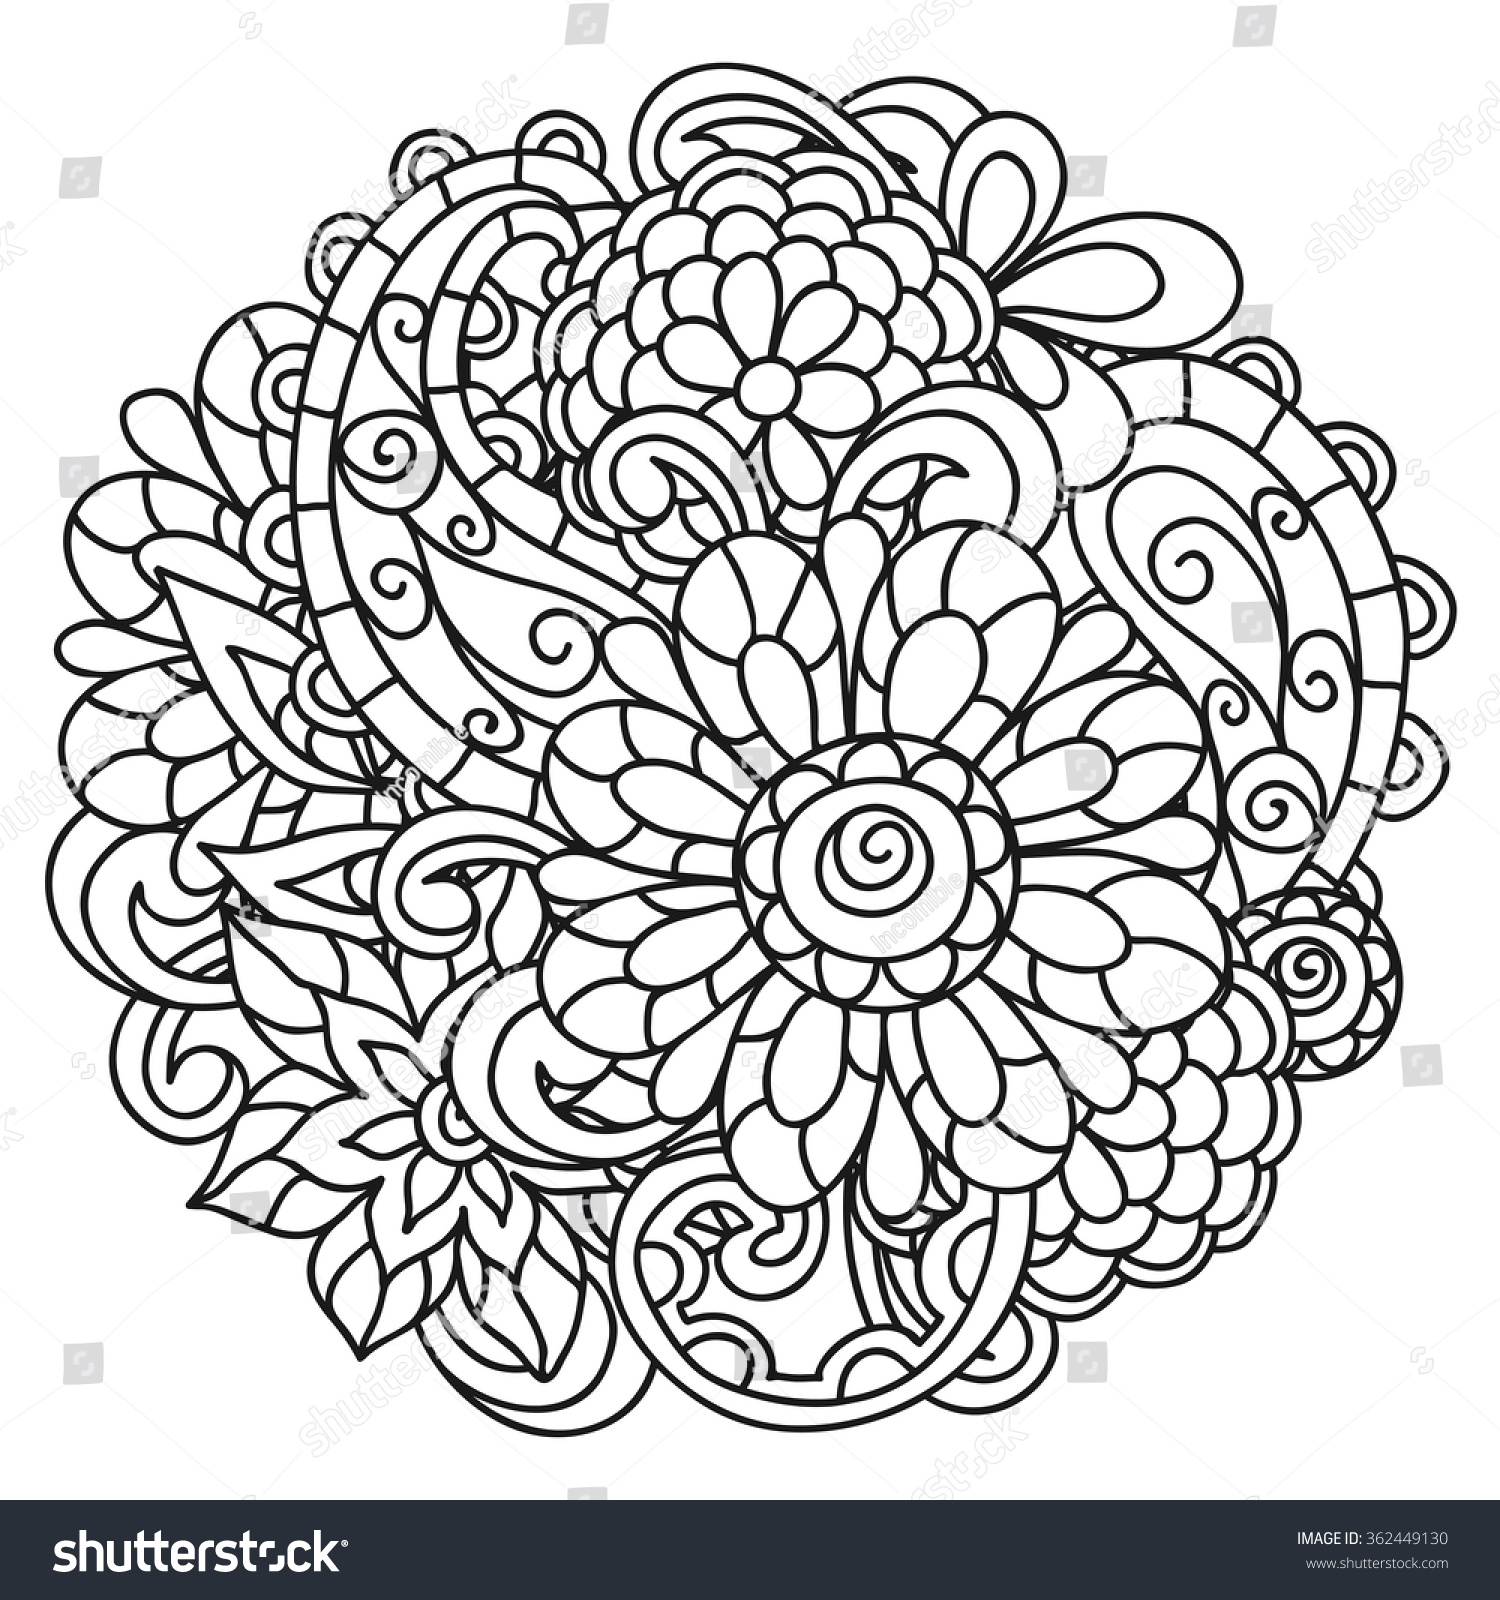 stock-vector-background-with-line-flowers-for-adult-coloring-page-printing-and-drawing-362449130